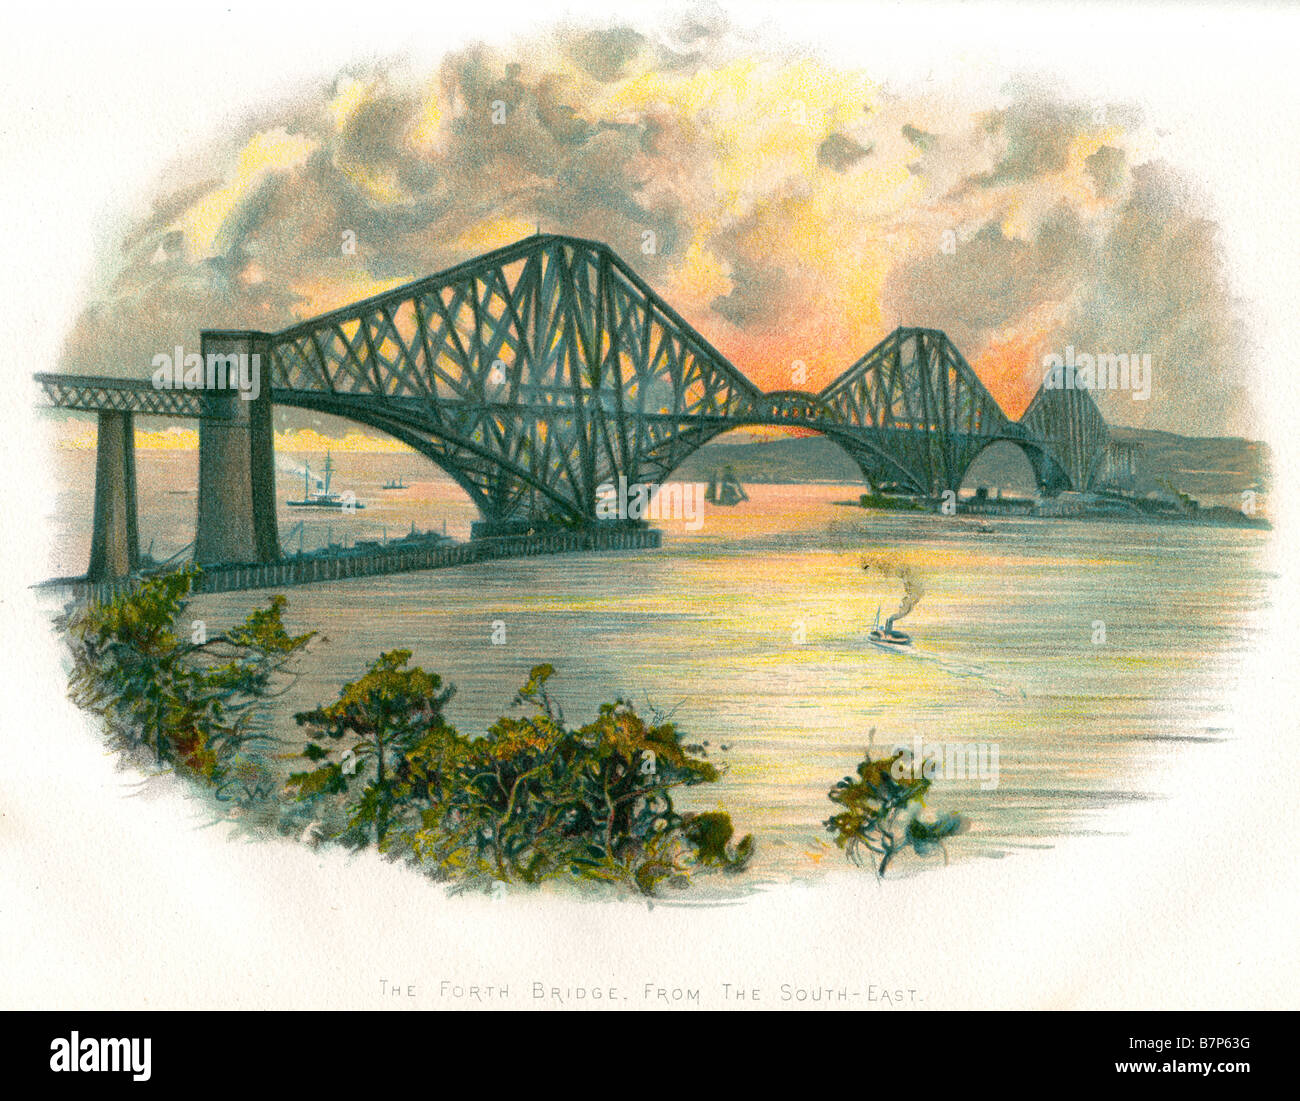 Forth bridge sout east travel transport connection metal iron steel structure civil engineering river trade boat - Stock Image